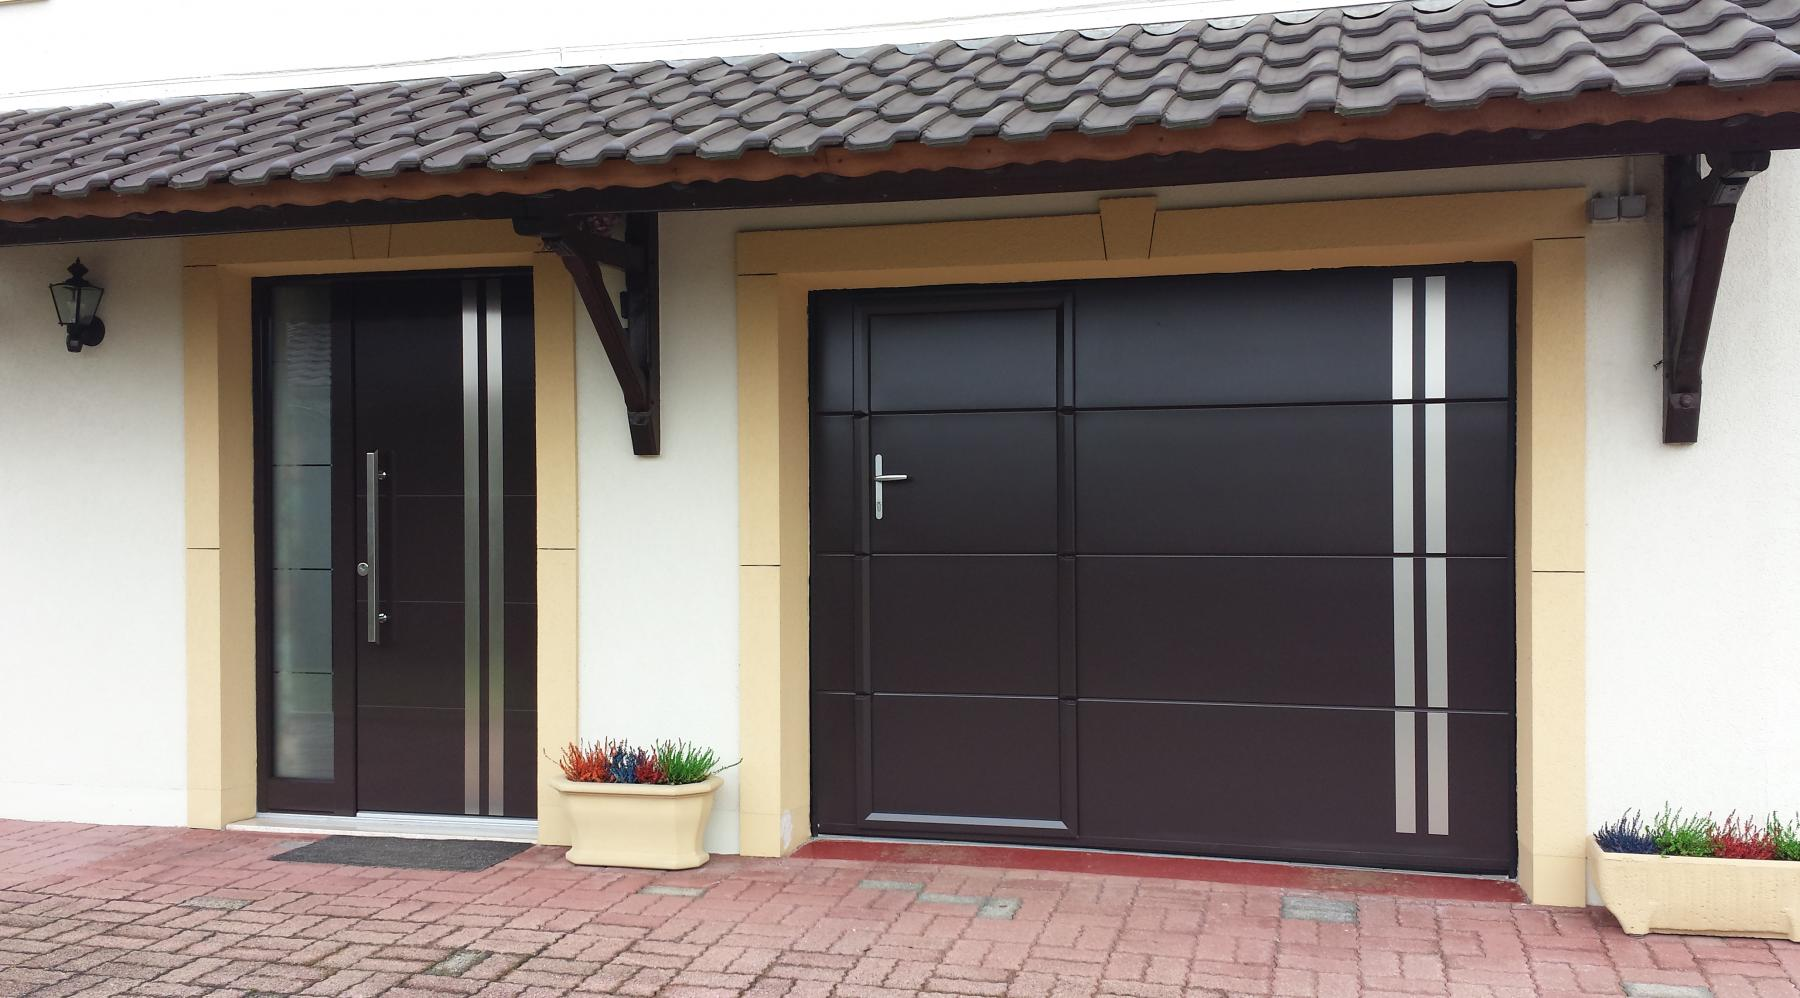 Galerie portes de garage weigerding for Porte de garage coulissante et porte a carreaux